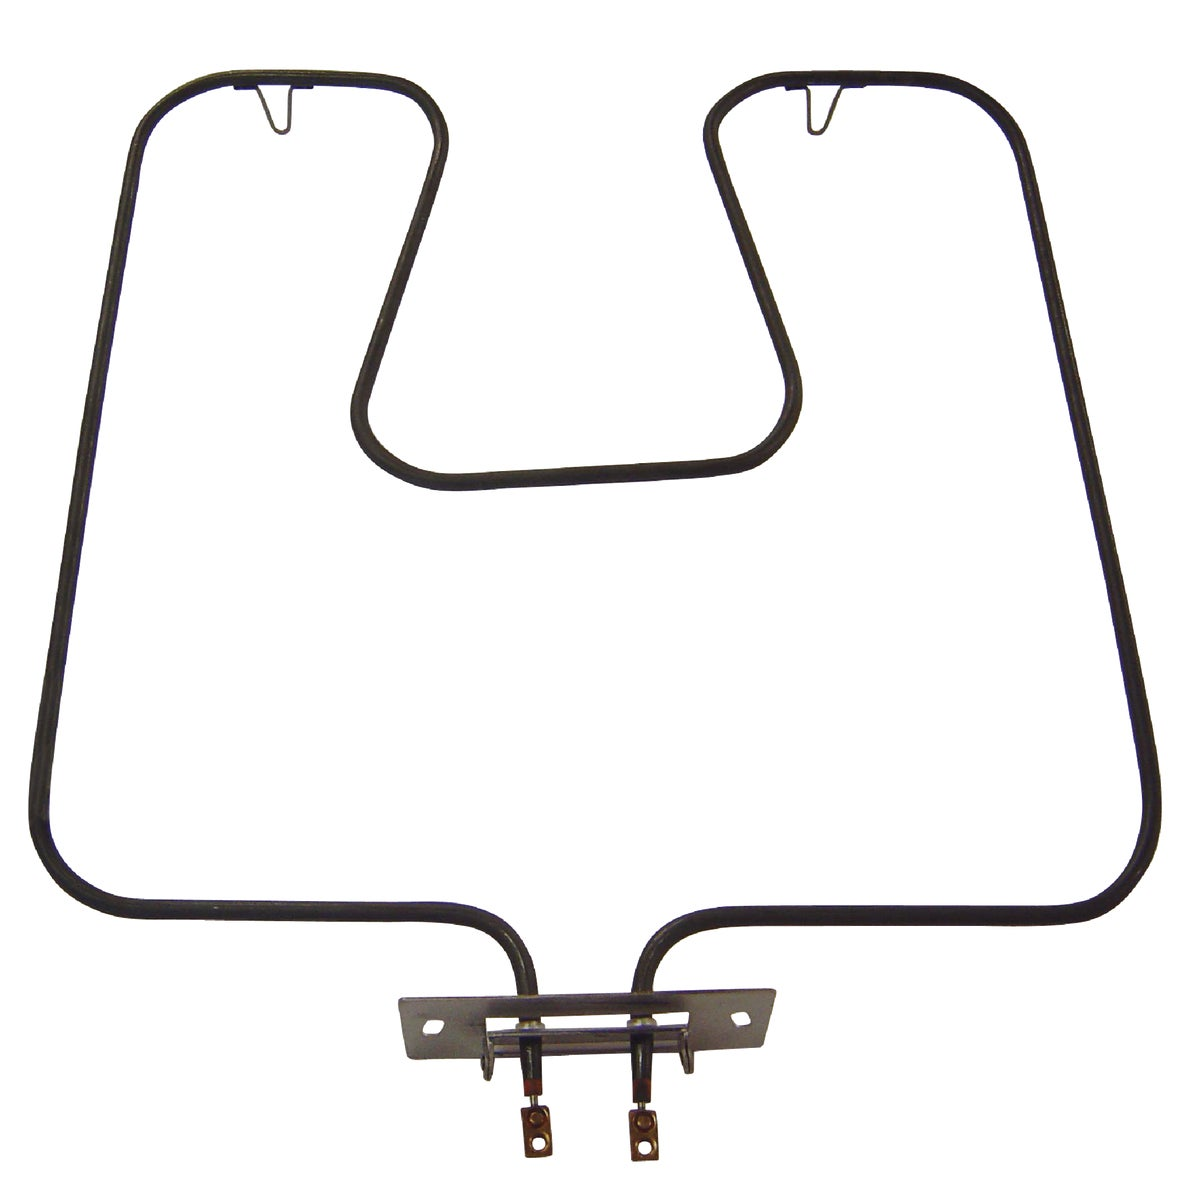 3000W OVEN ELEMENT - 7507 by Range Kleen Mfg Inc